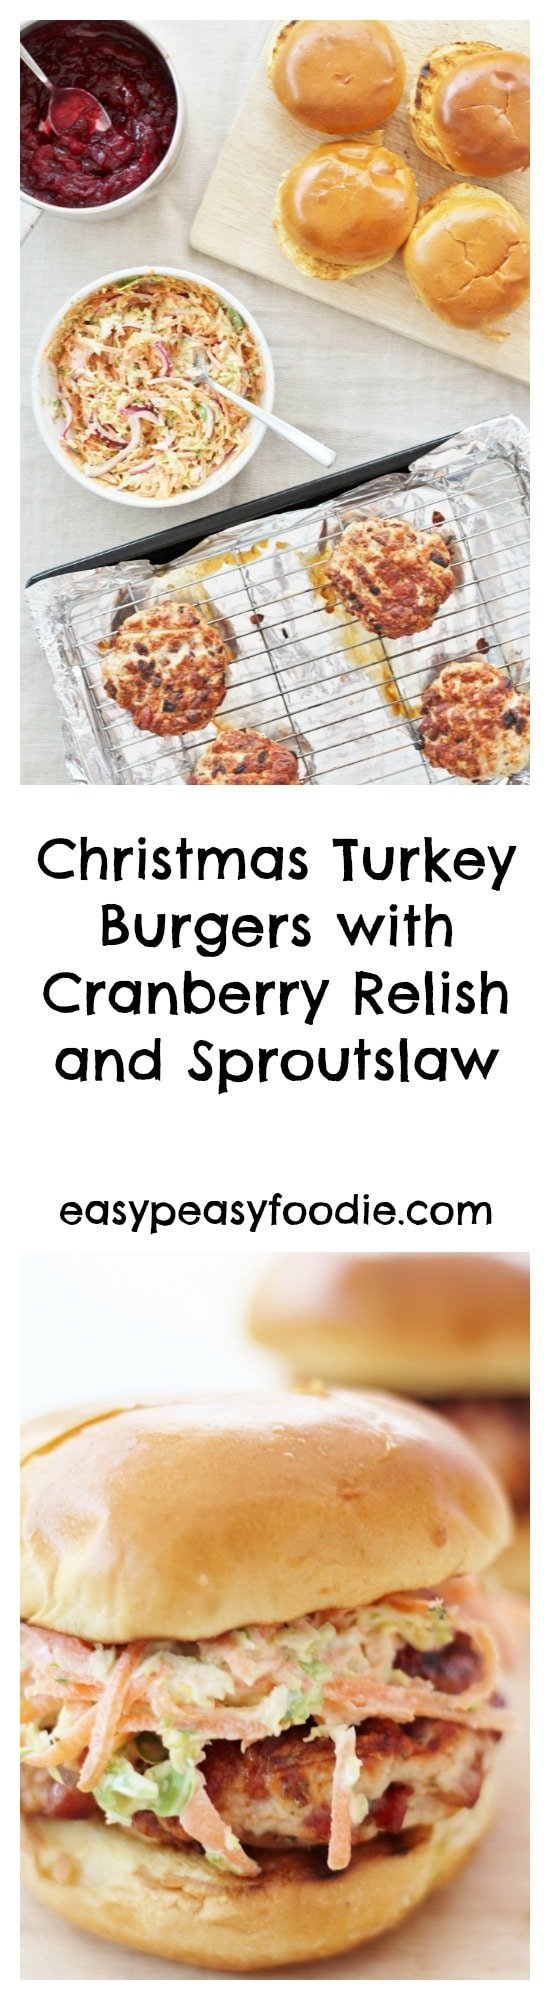 Christmas Turkey Burgers with Cranberry Relish and Sproutslaw - pinnable image for Pinterest